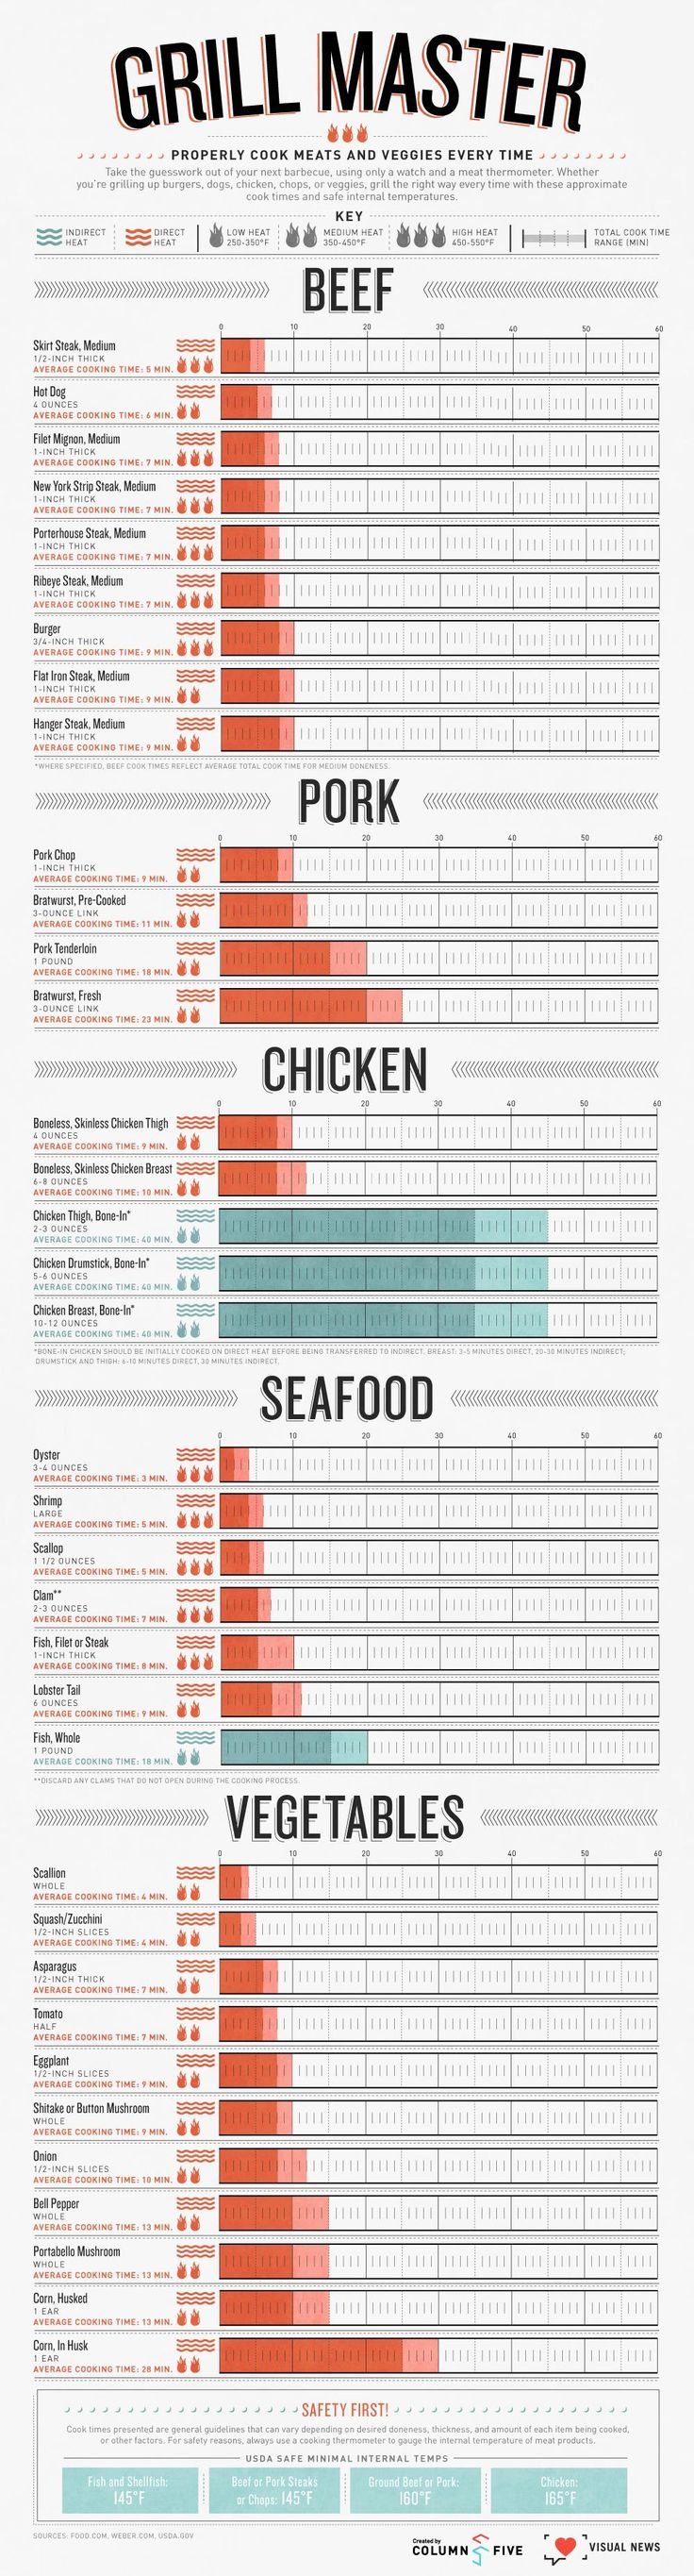 Grilling times for Beef, Chicken, Seafood, Pork, and Vegetables